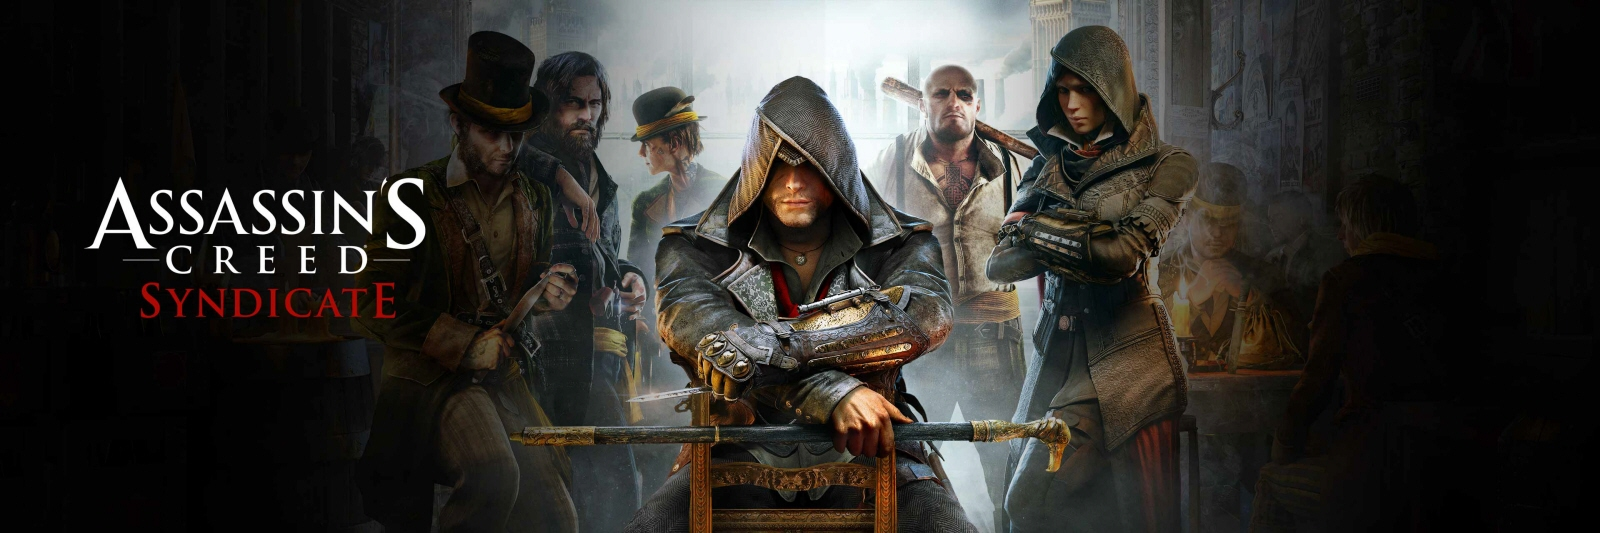 Be first to play to Assassin's Creed Syndicate with your eyes